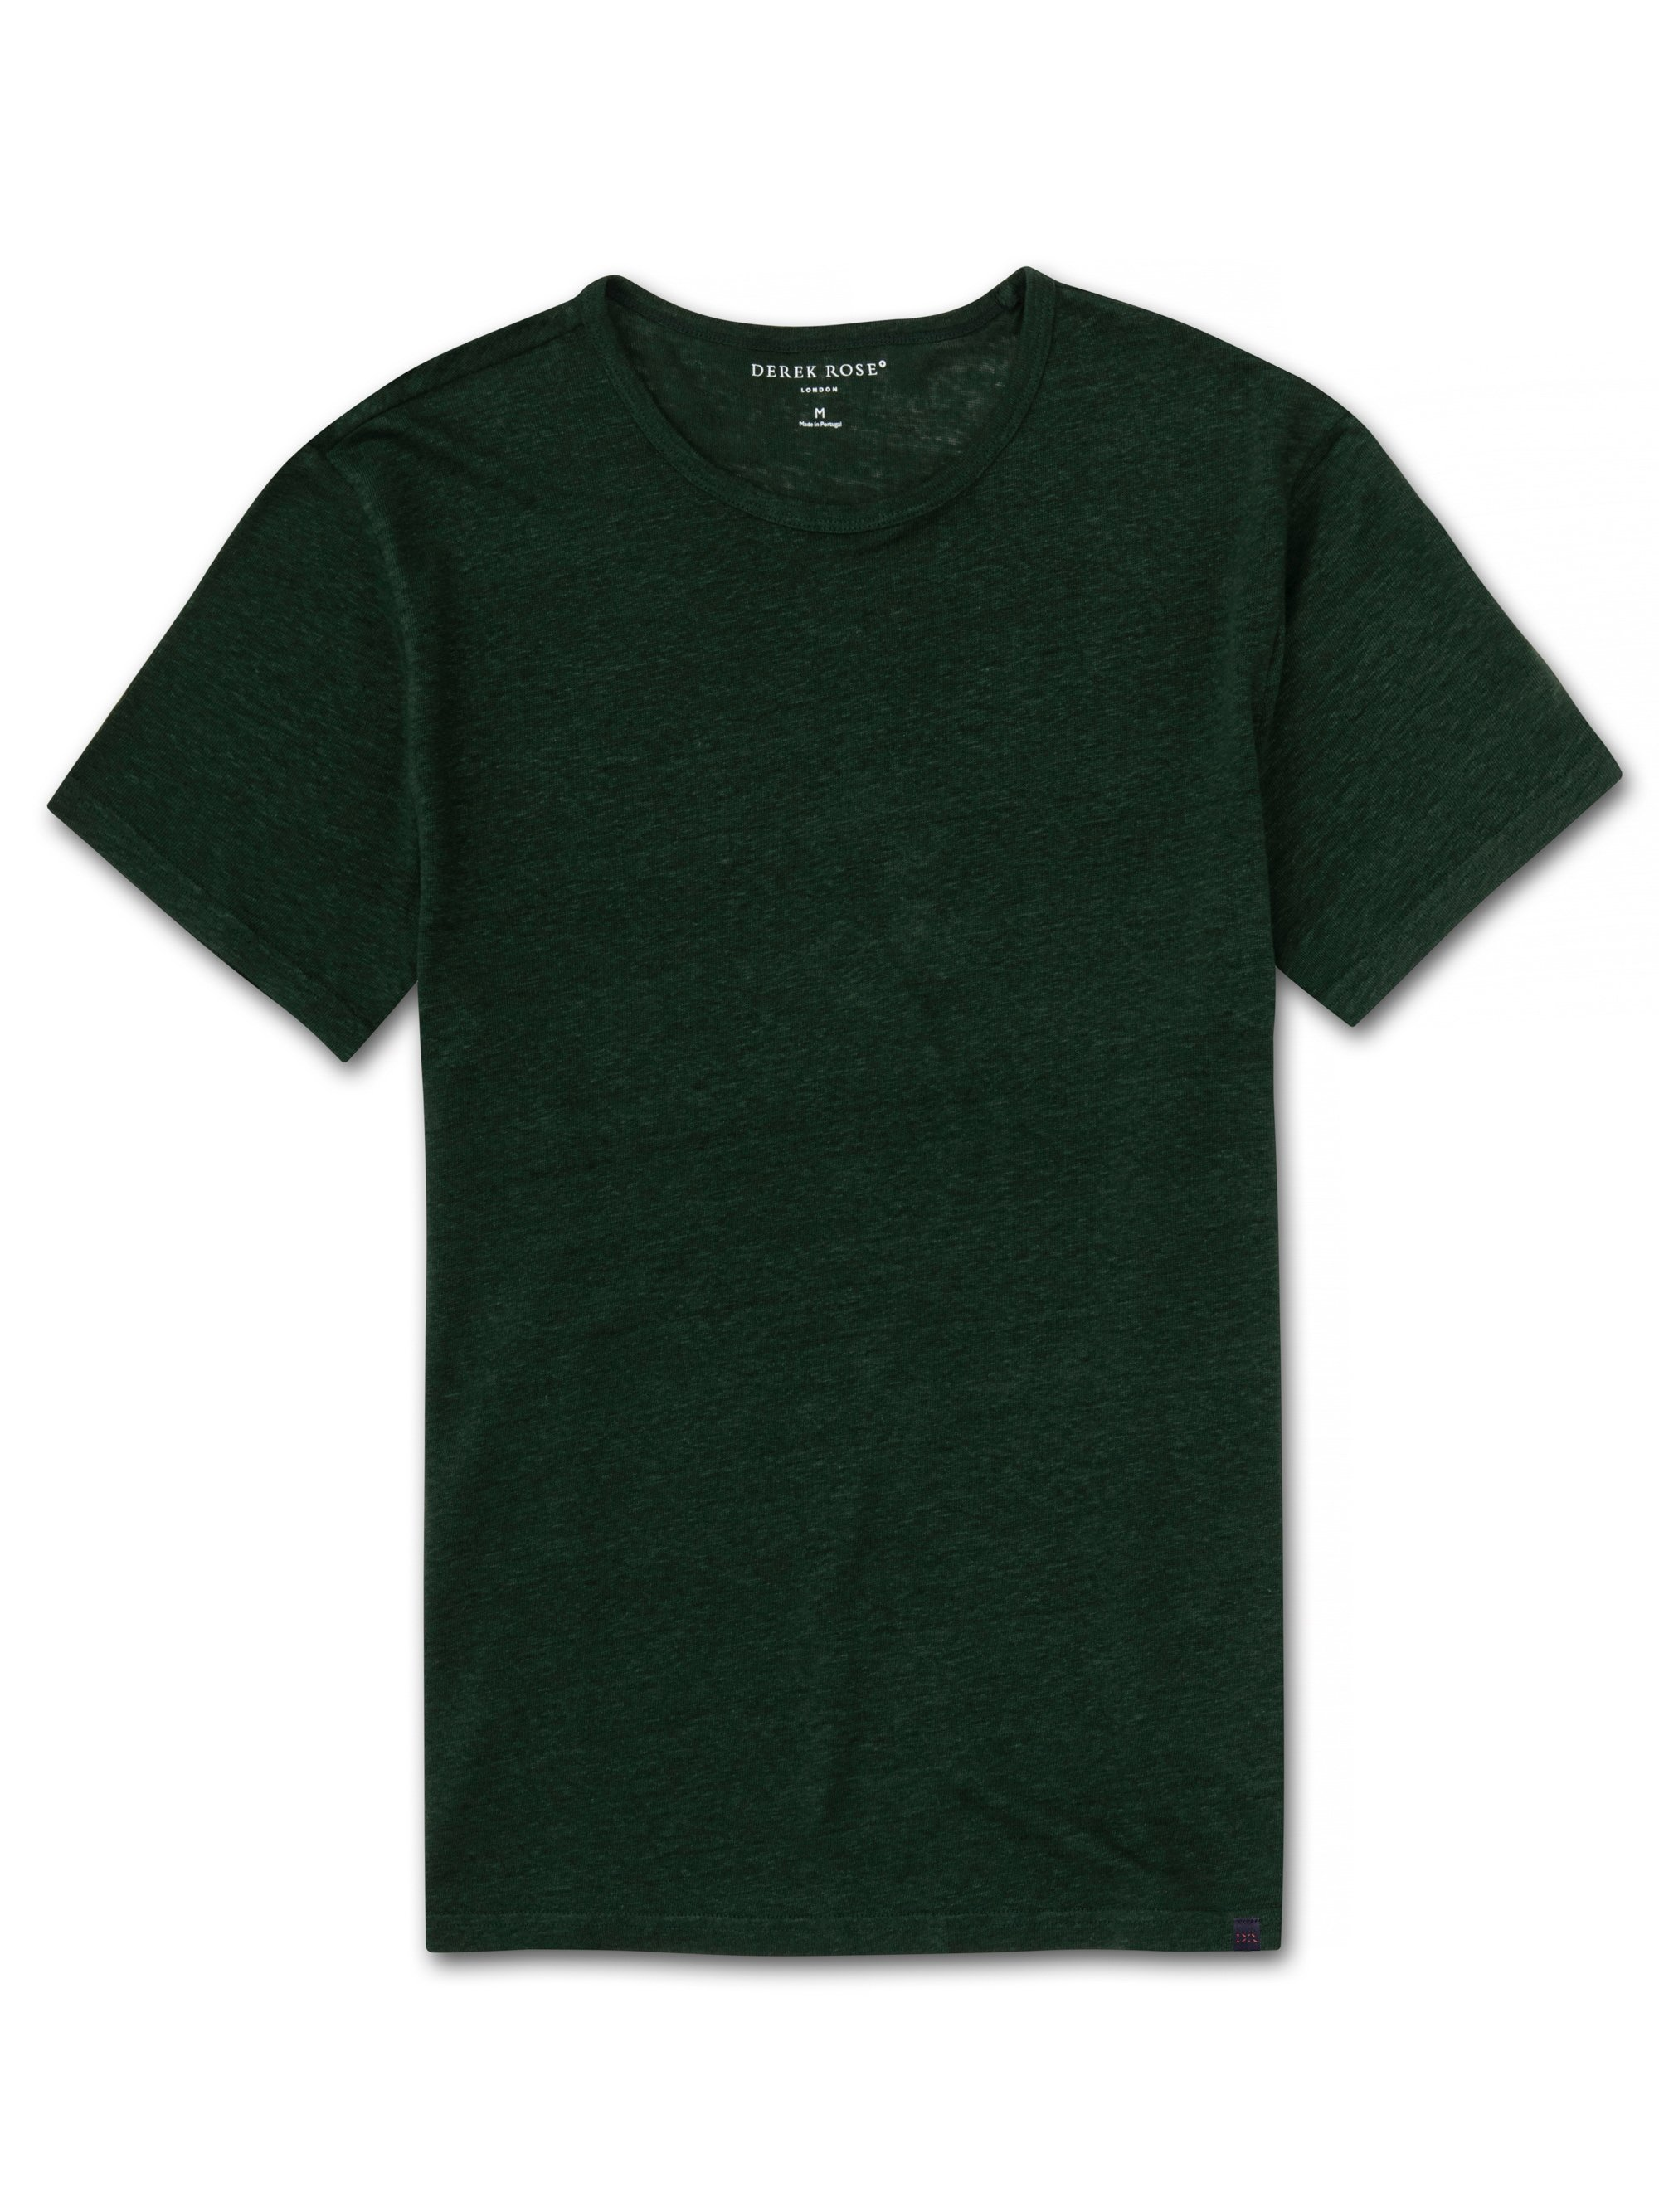 Men's Linen Short Sleeve T-Shirt Jordan Pure Linen Green